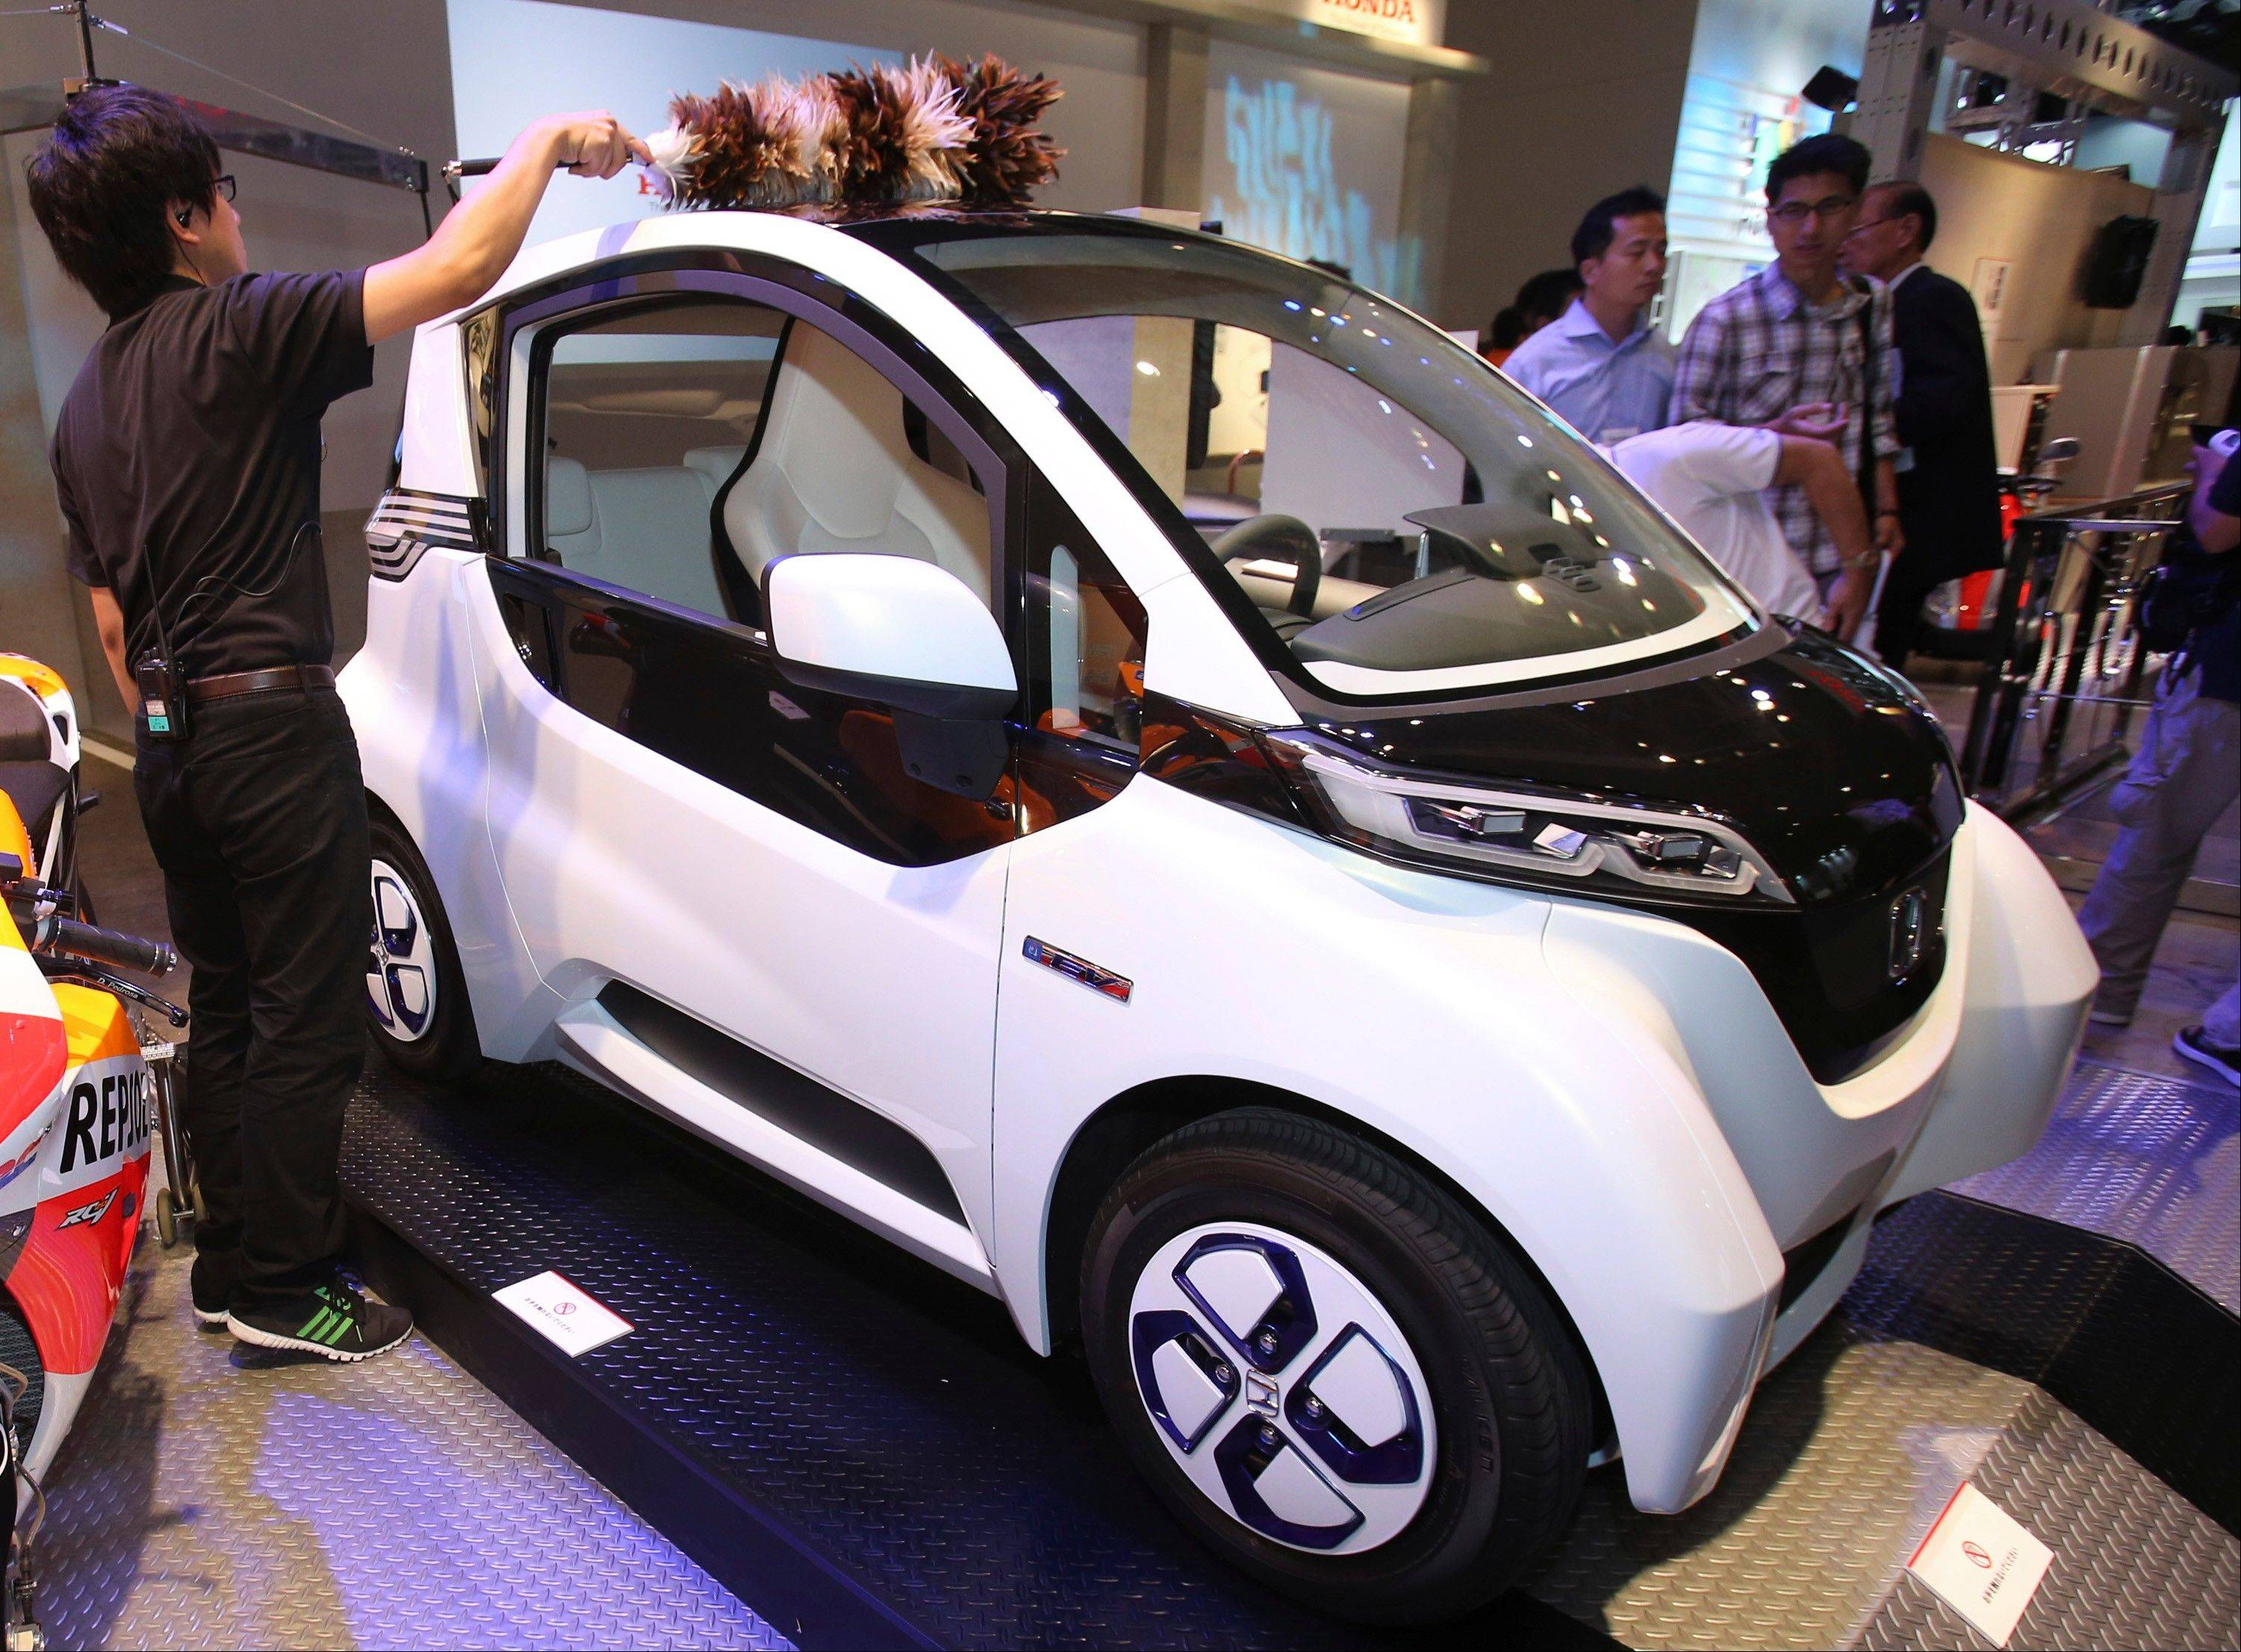 An event staff cleans a Honda Motor Co.'s Micro Commuter prototype electric vehicle during the annual CEATEC advanced technologies exhibition in Chiba near Tokyo. By connecting the driver's smartphone to the dashboard, he or she can control the home electronics as television sets, fans, and electric lights while driving the vehicle.